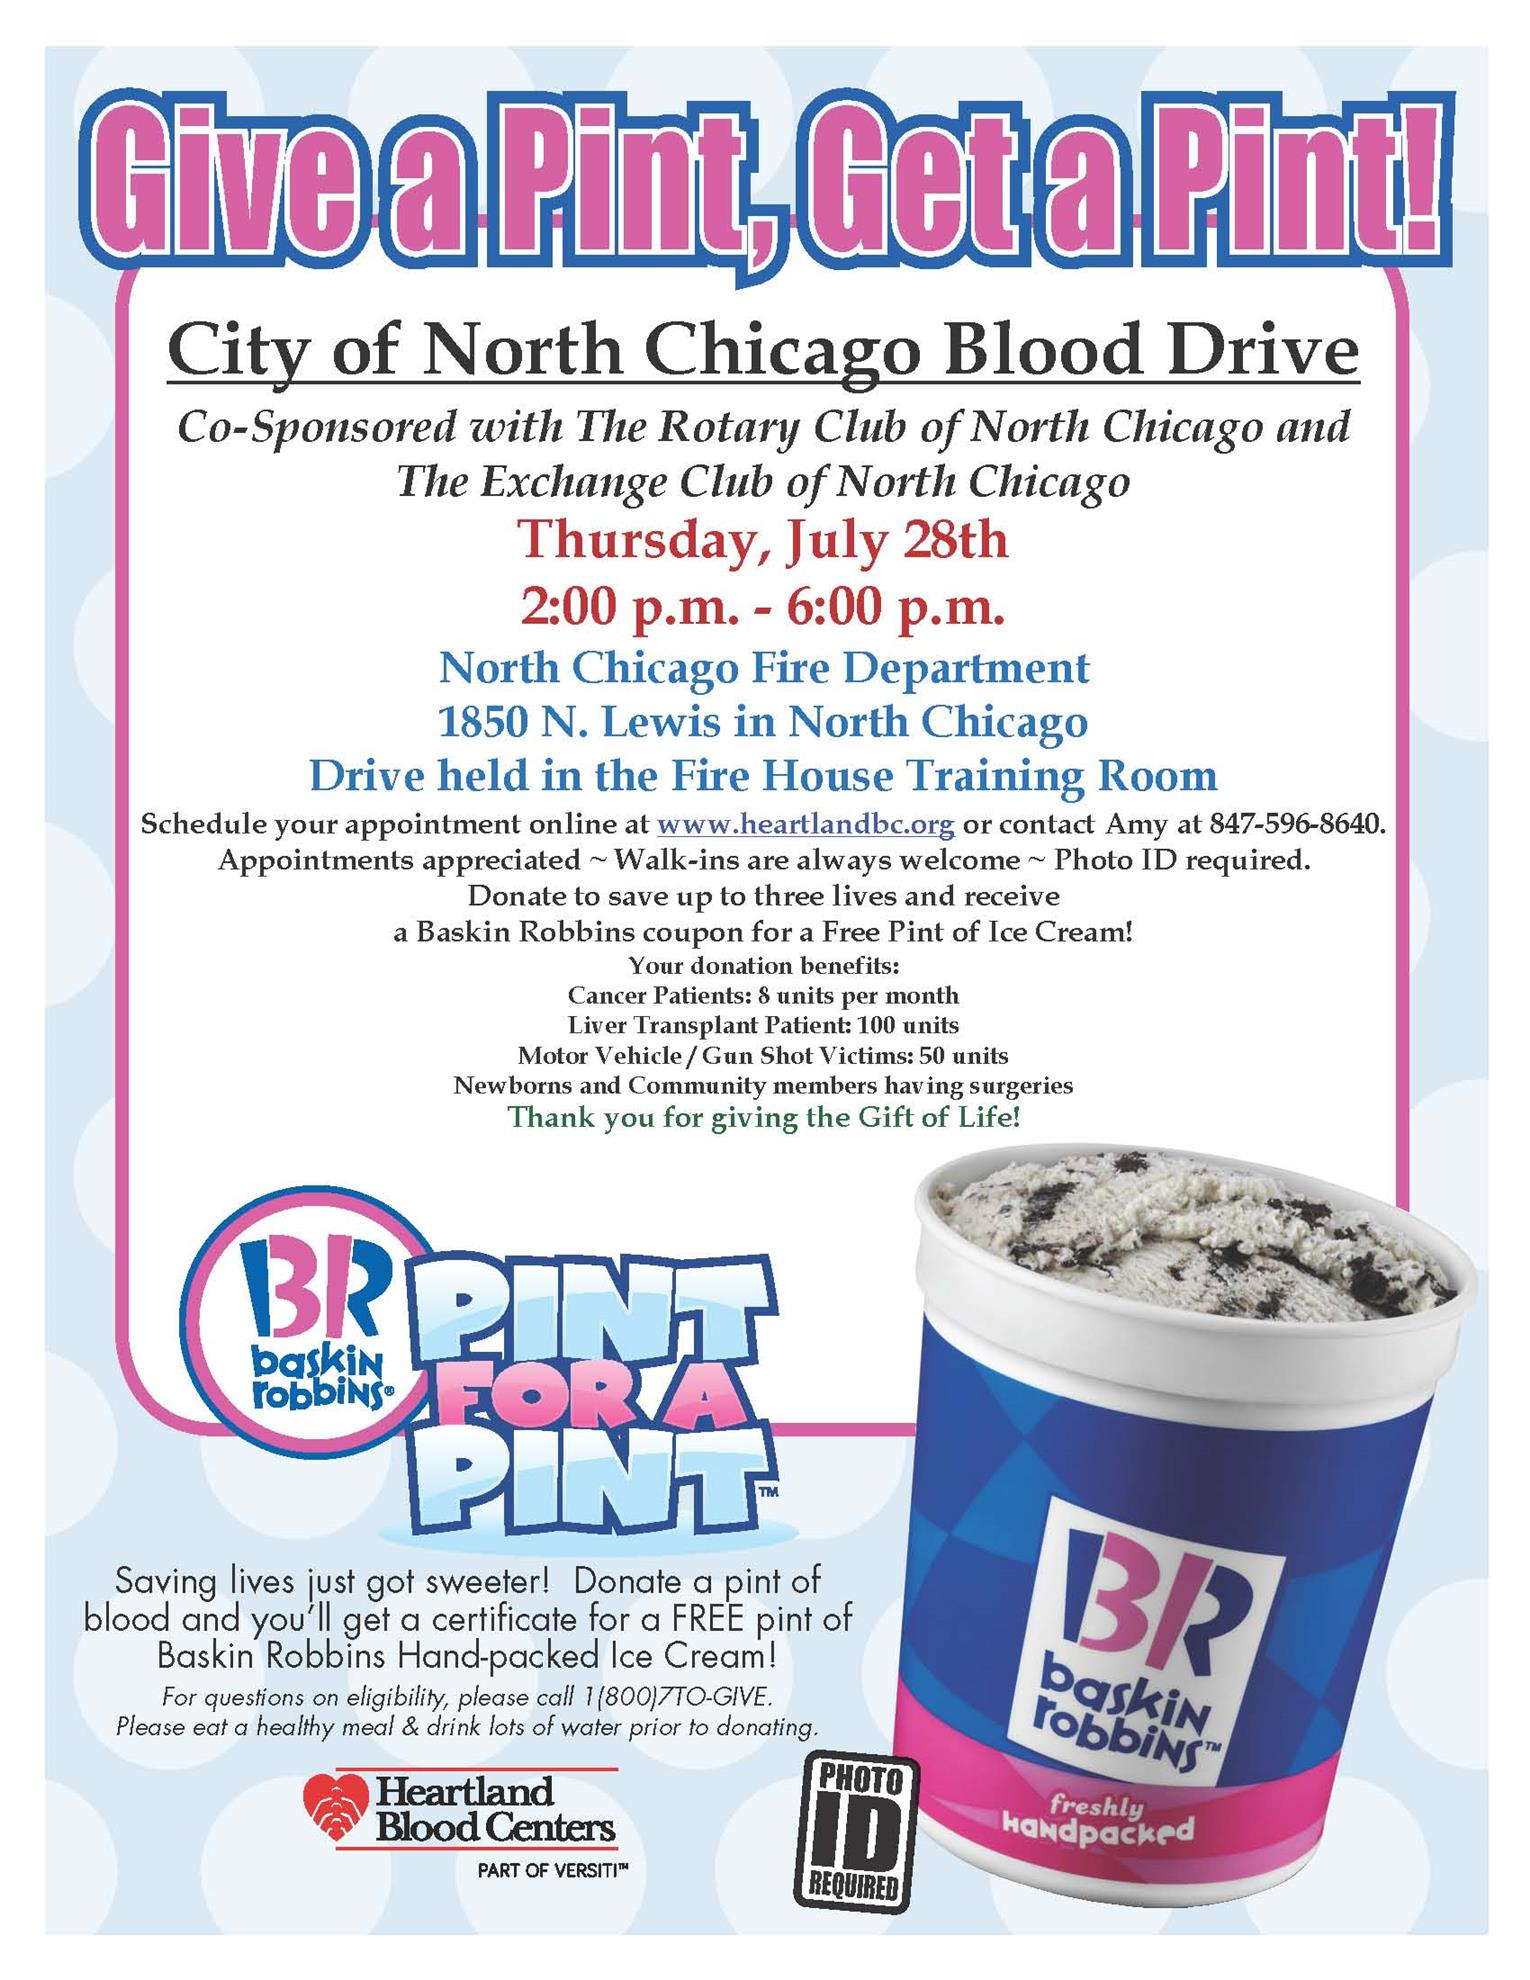 Blood Drive Partnership July 28th At North Chicago Fire Department